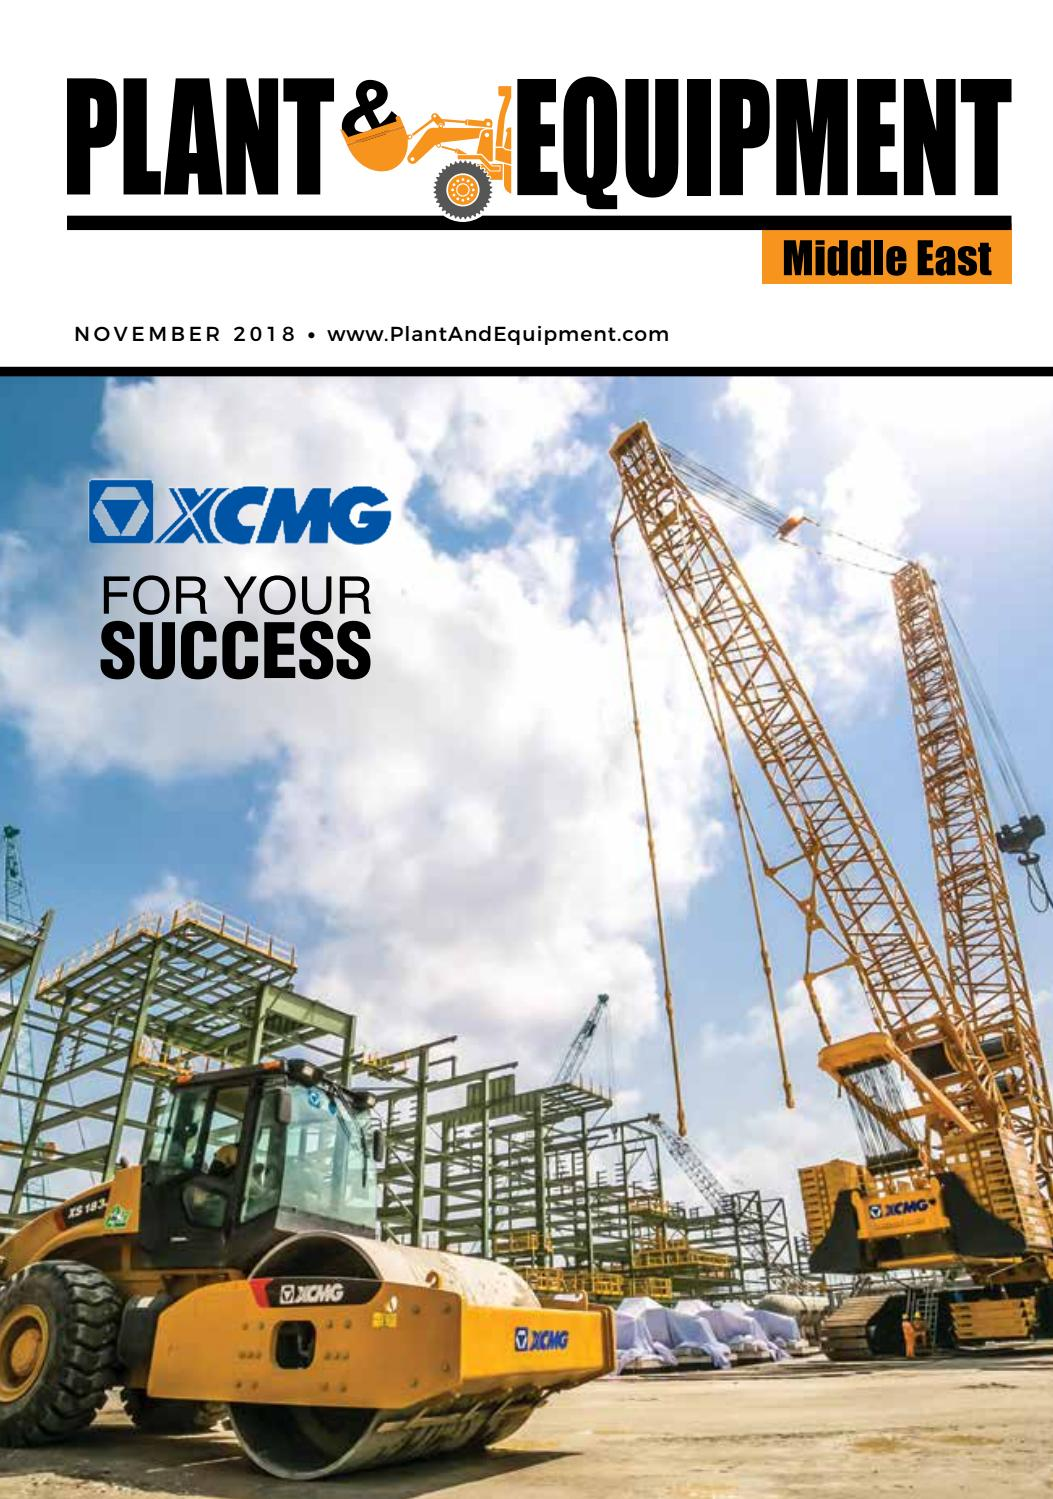 55bfb578d Plant & Equipment | Middle East | November 2018 Edition by Plant And  Equipment - issuu